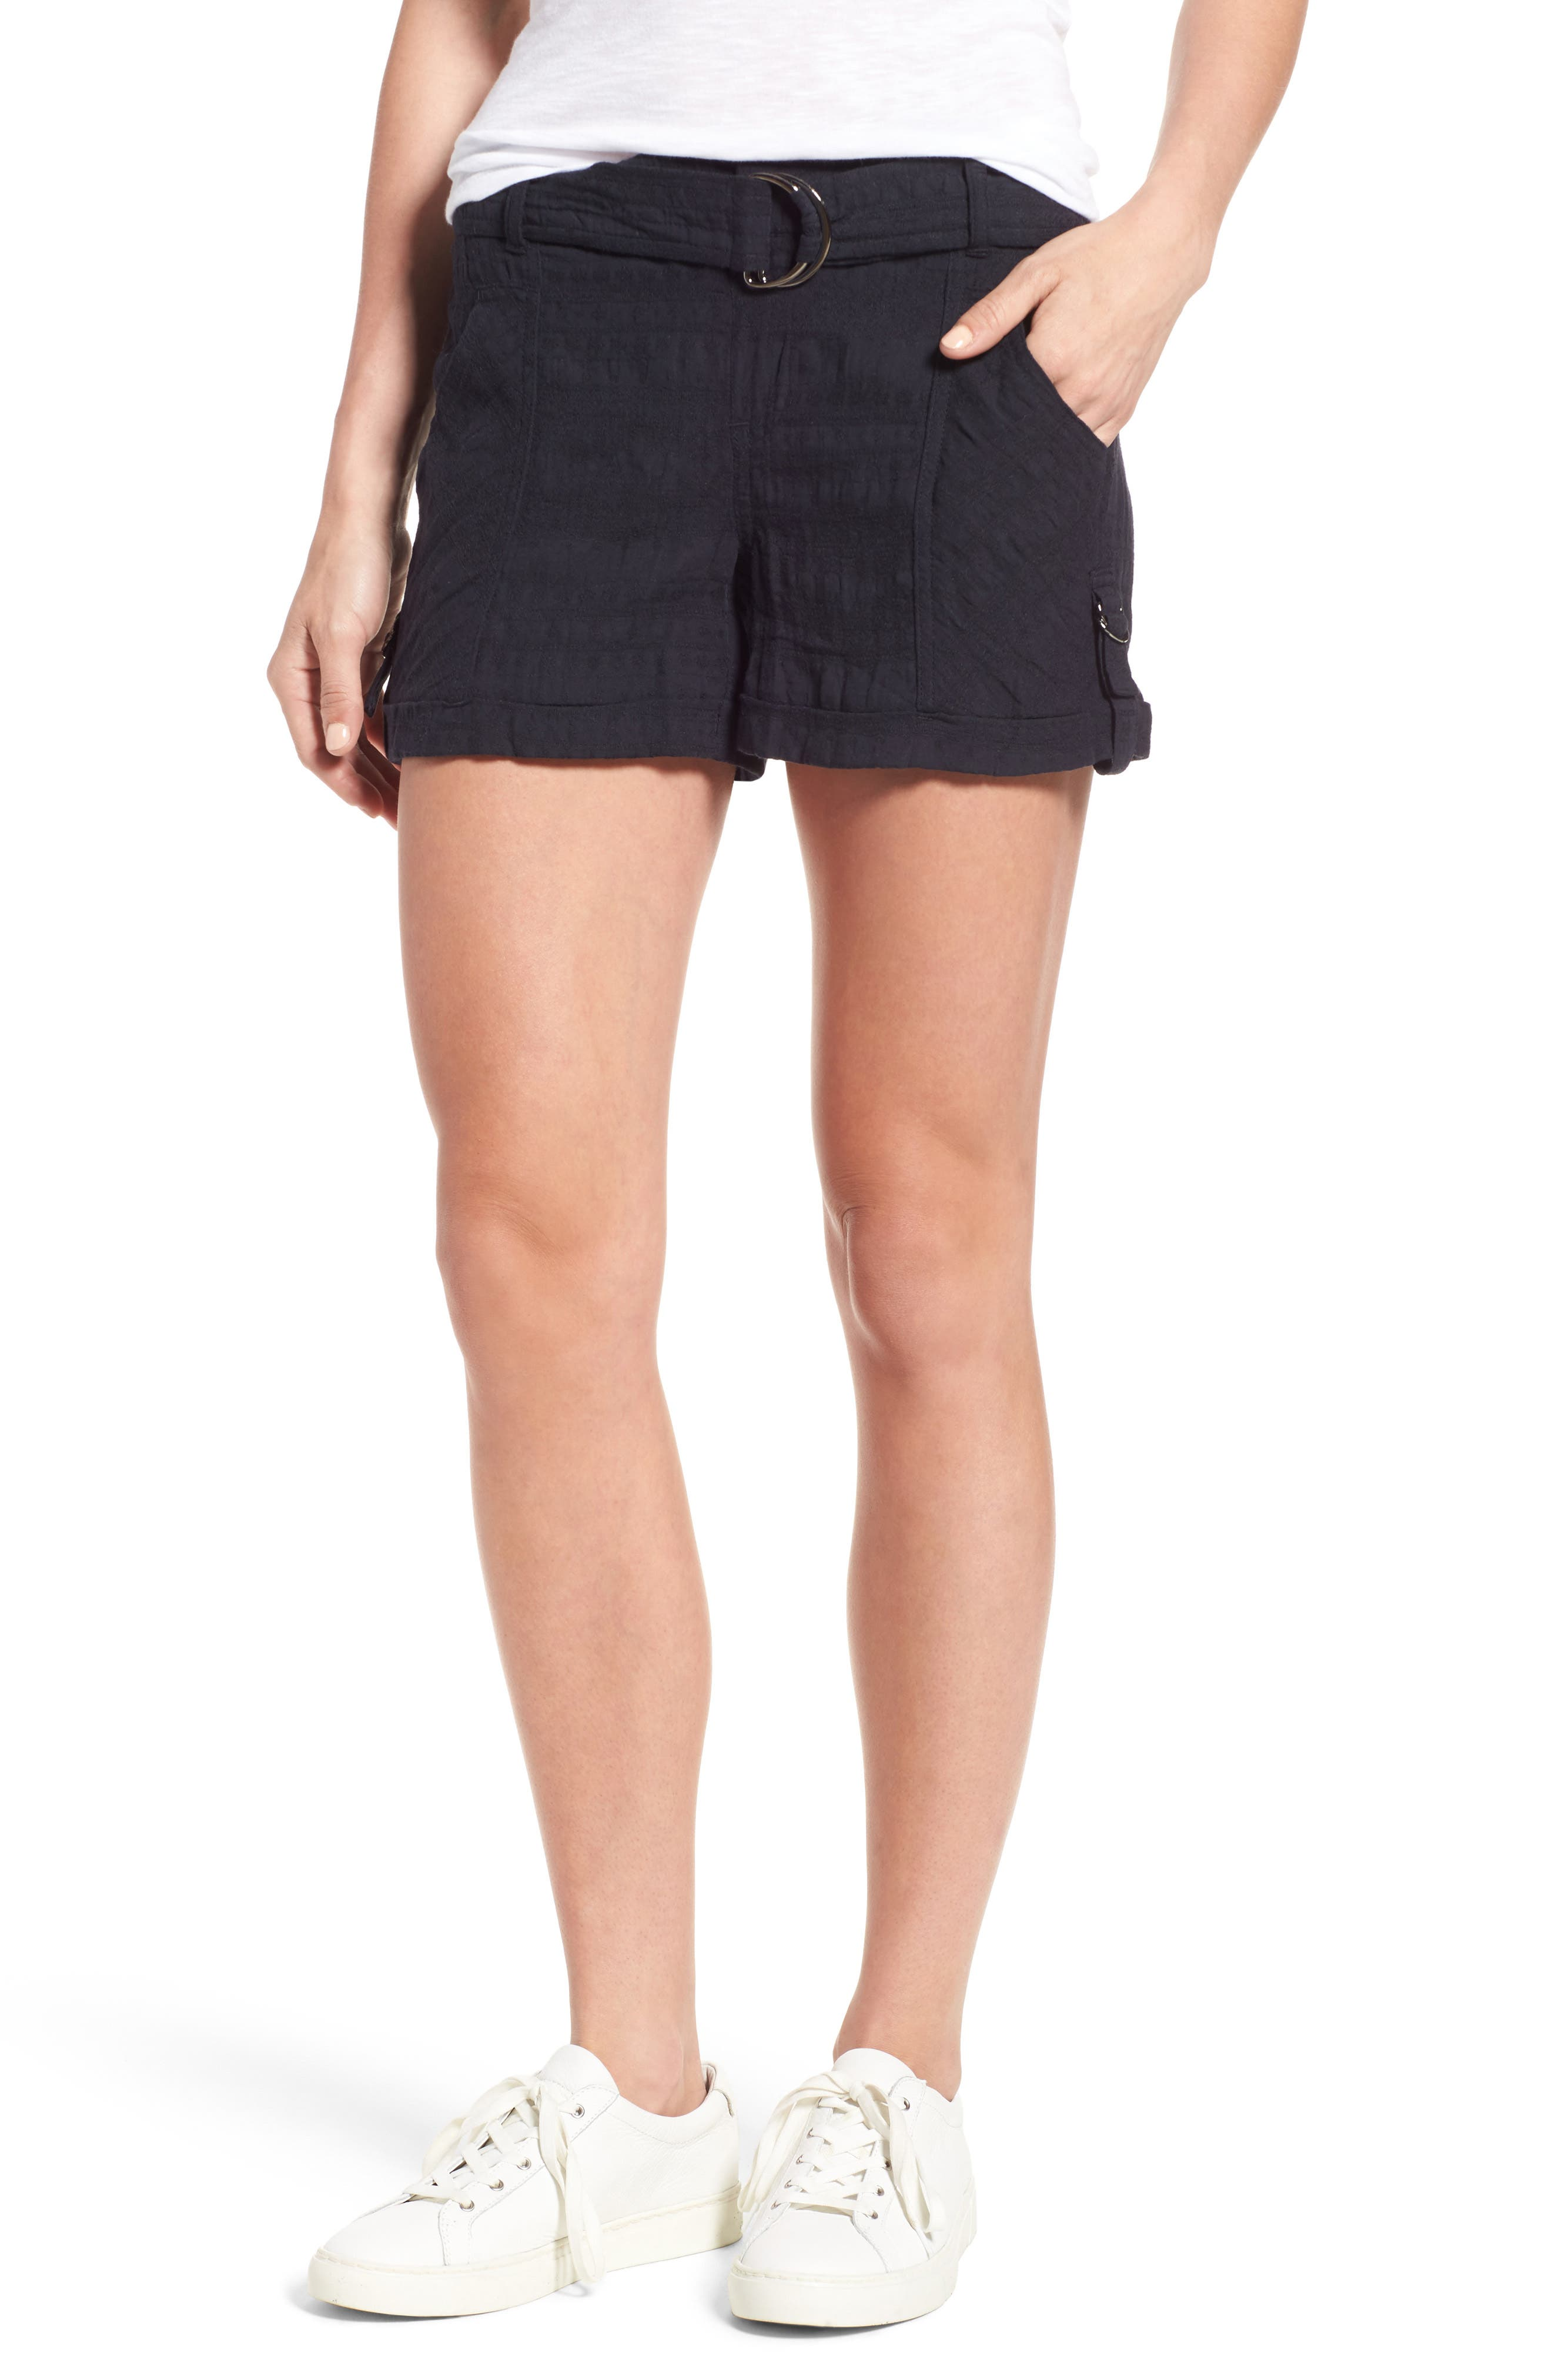 Alternate Image 1 Selected - Wit & Wisdom D-Ring Belted Shorts (Nordstrom Exclusive)